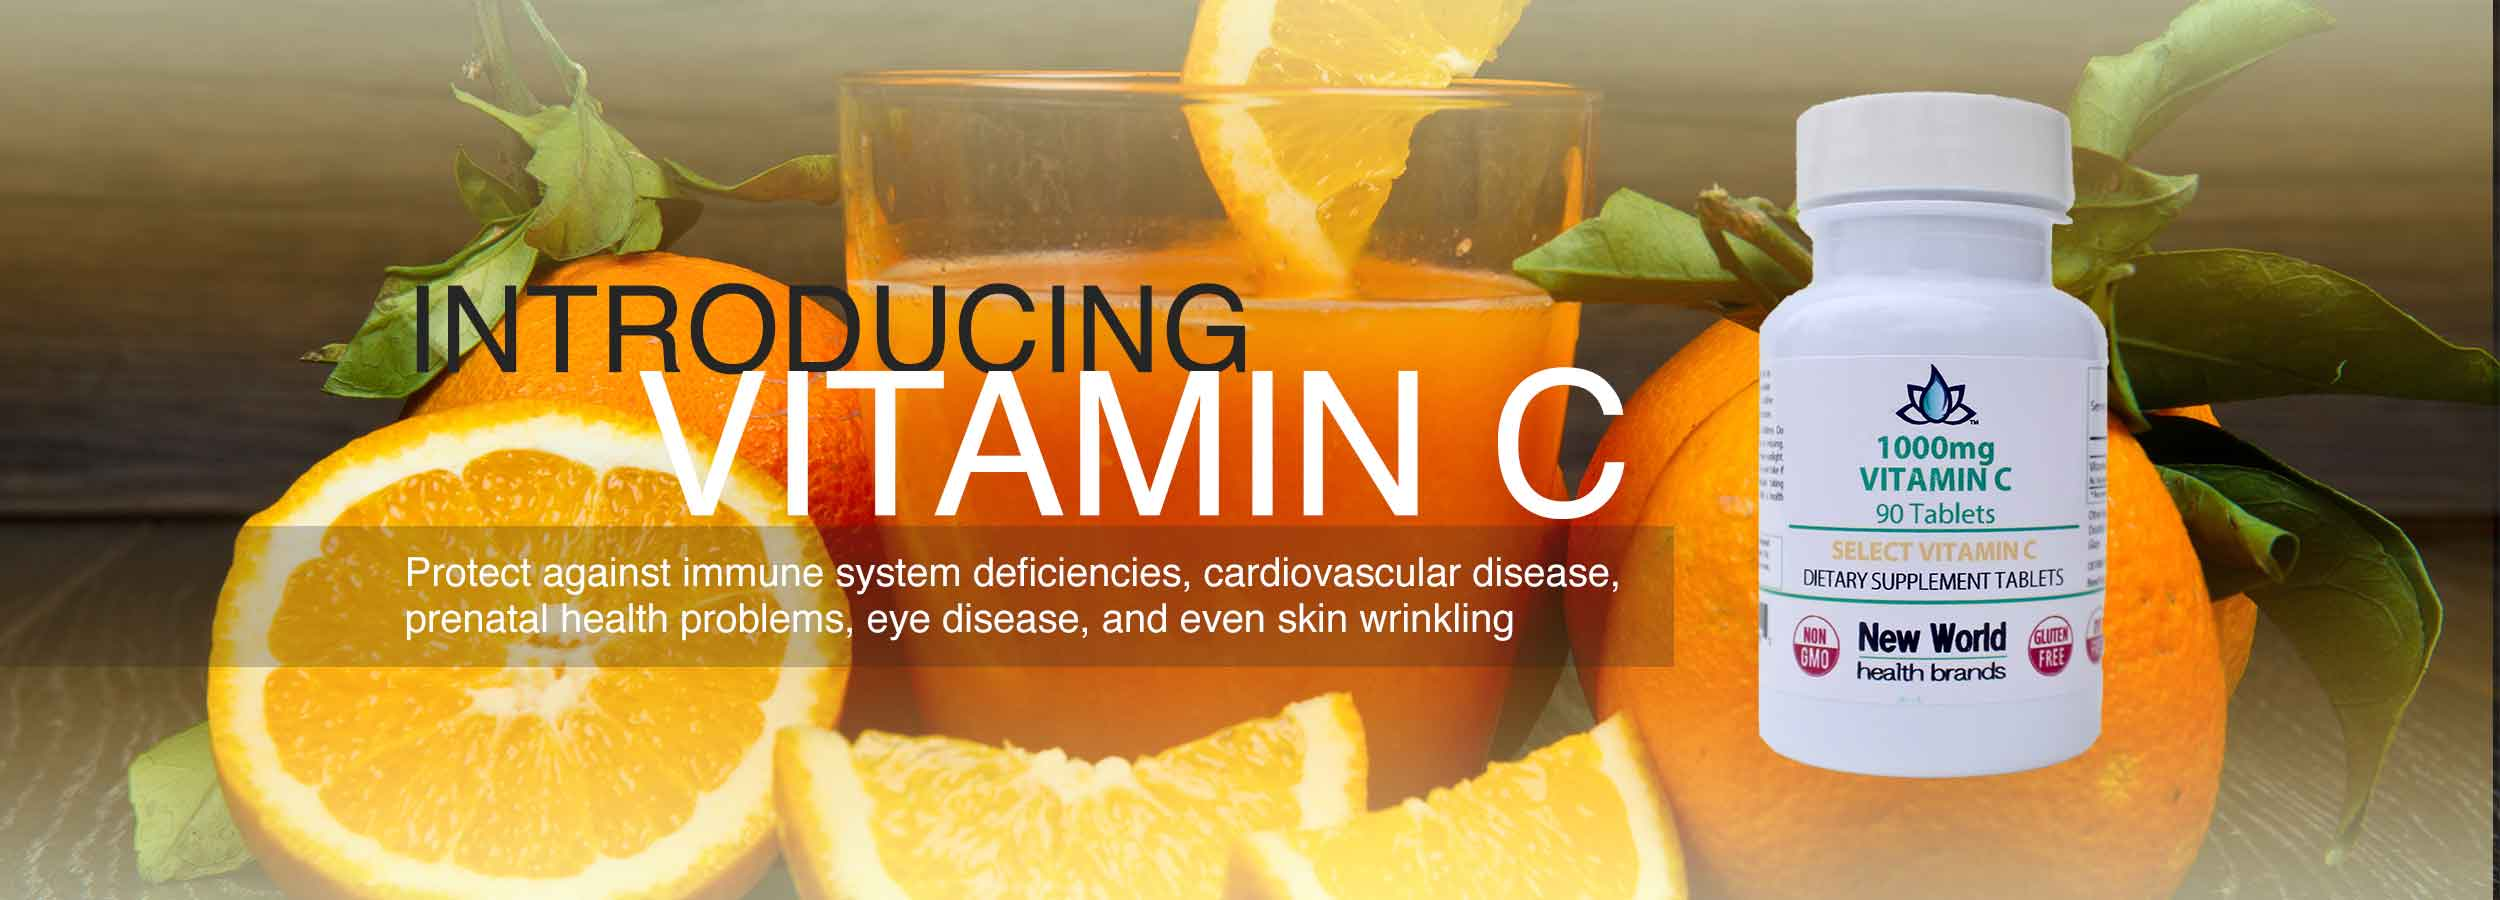 Introducing Vitamin C